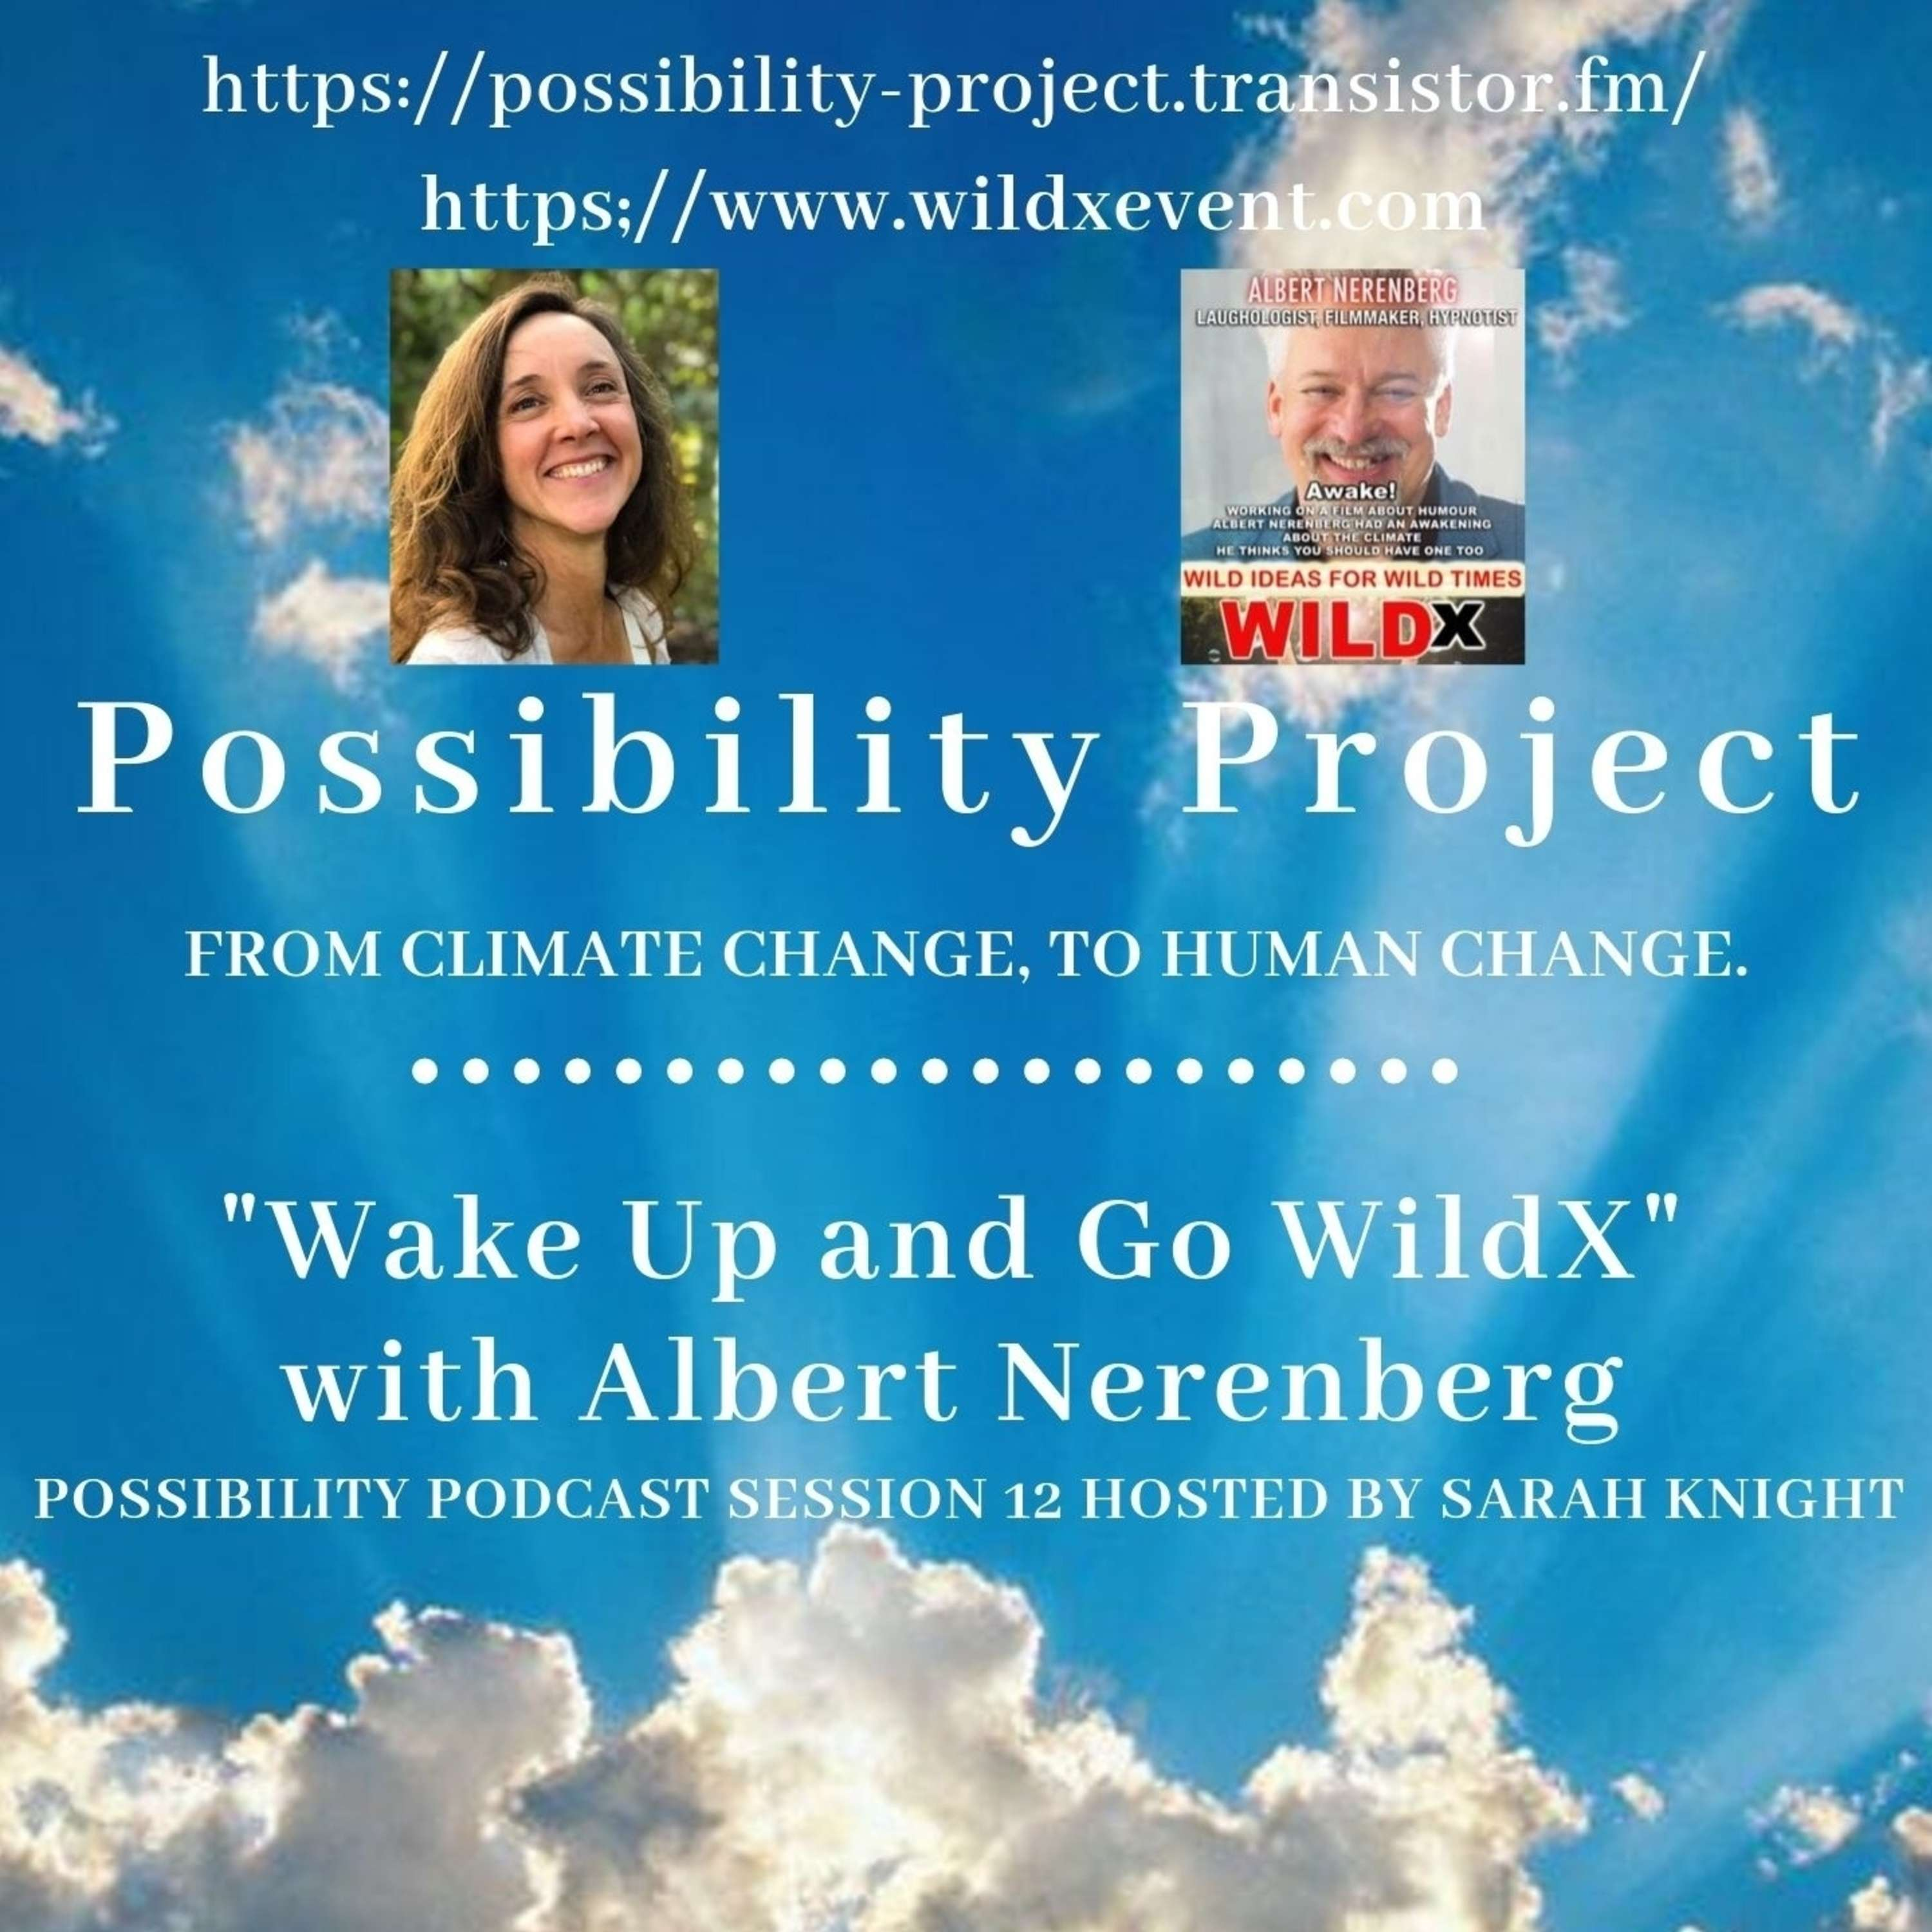 Wake Up and Go WildX! Possibility Podcast Session 12